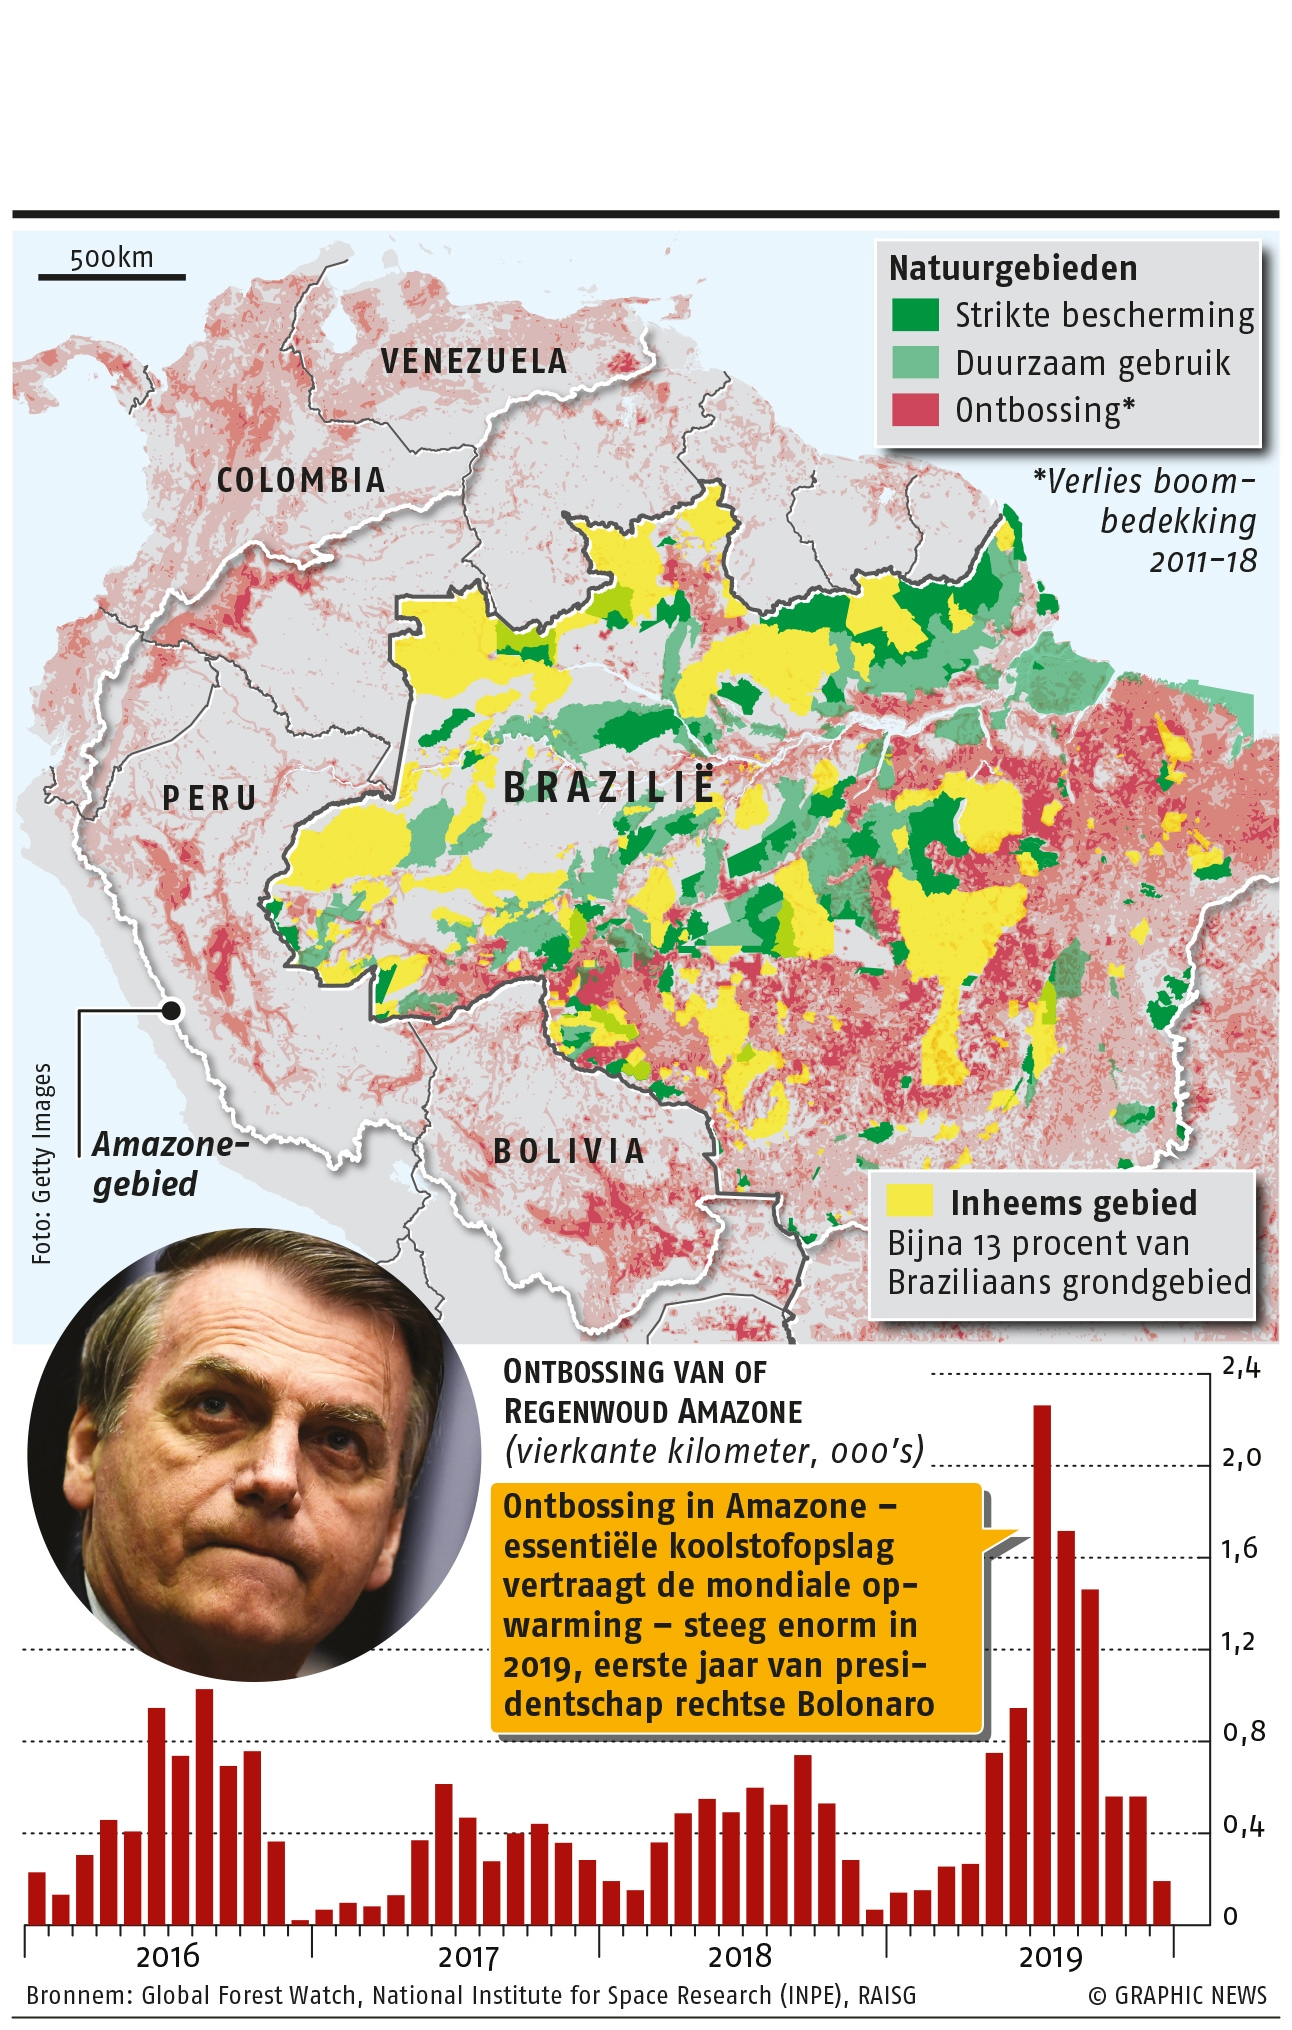 February 10, 2020, Brazil's President Jair Bolsonaro is proposing a controversial bill to allow commercial mining on protected indigenous lands, a move that environmentalists say can only speed up deforestation. Graphic shows map of indigenous lands and protected areas in the Amazon, as well as deforestation between 2016 and 2019.